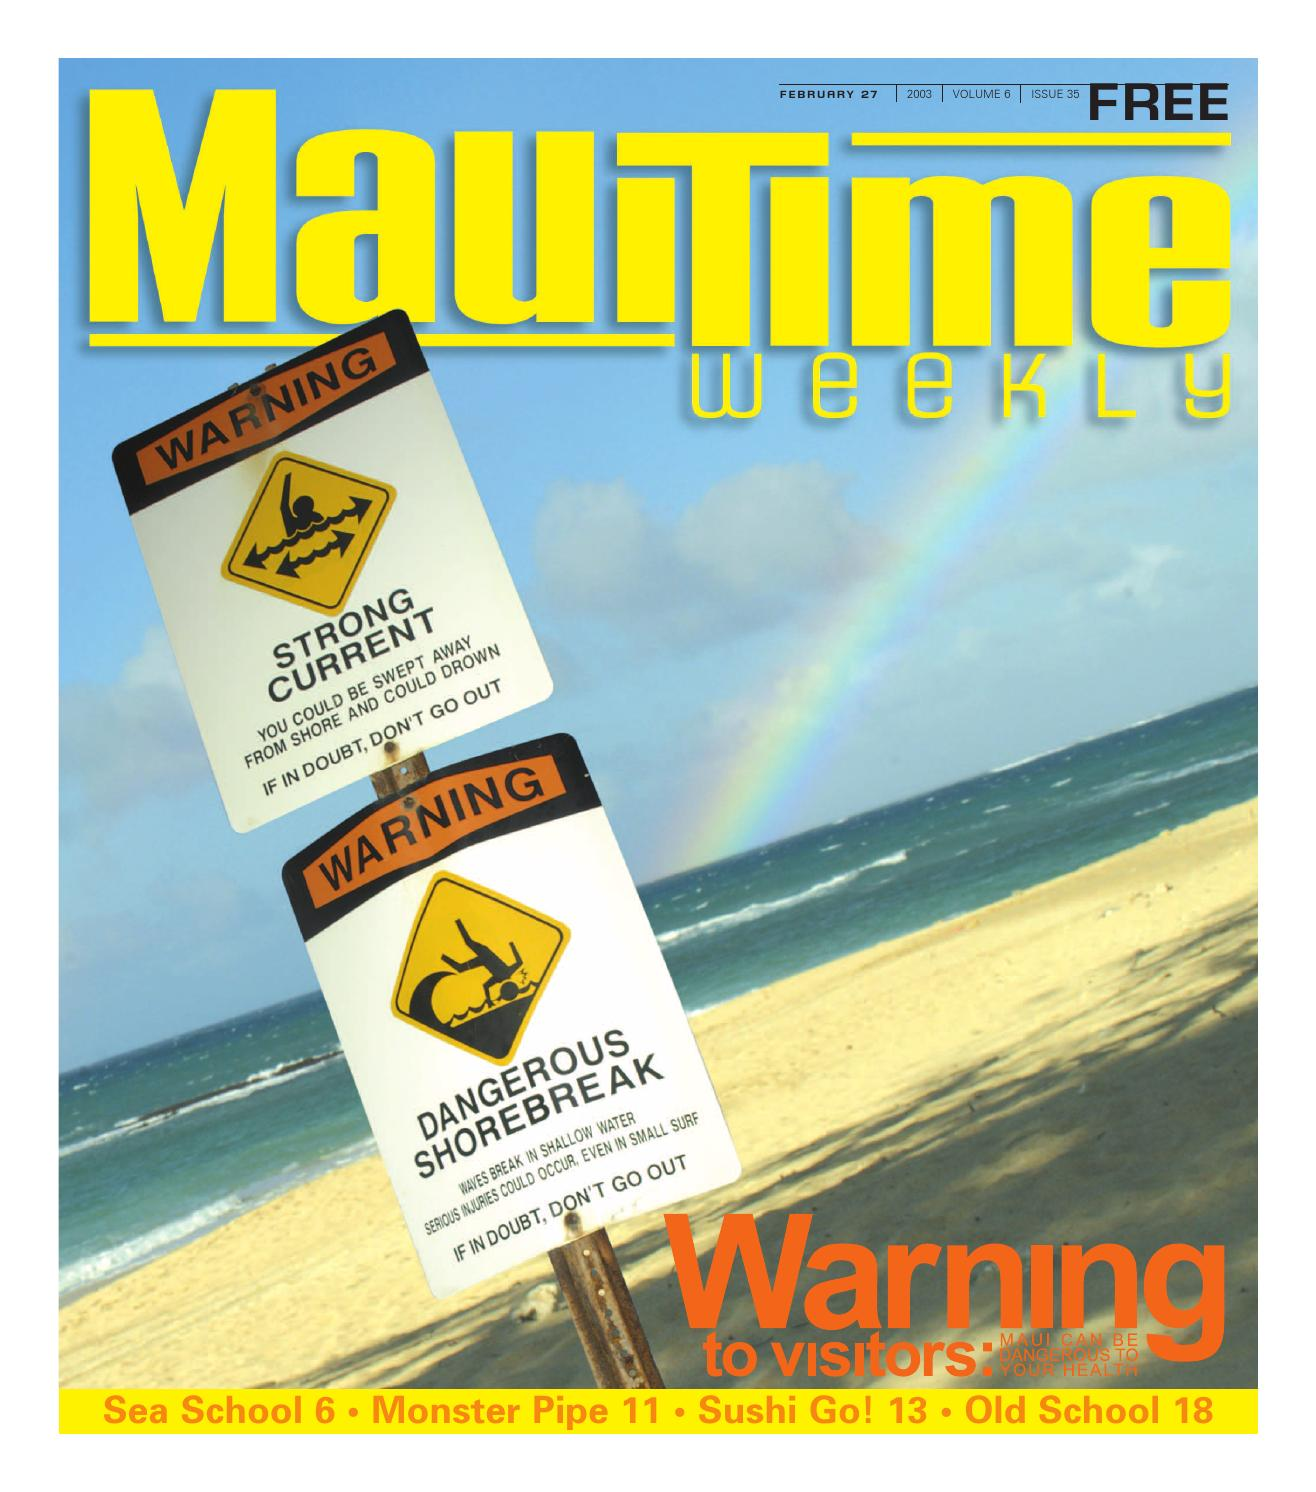 06 35 Dangers of Living on Maui, February 27, 2003, Volume 6